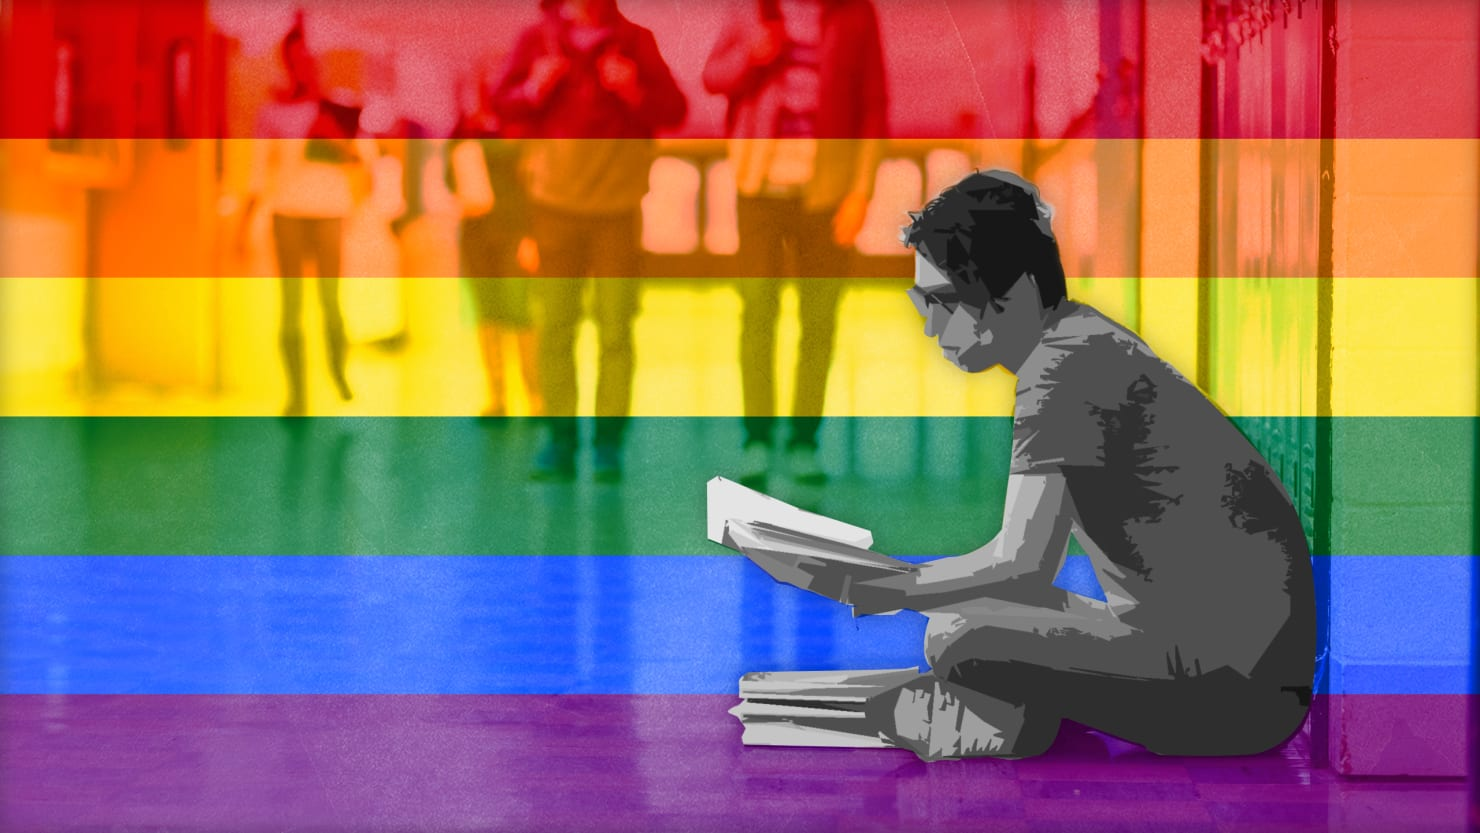 What Did You Learn At School Today Homophobia-8917